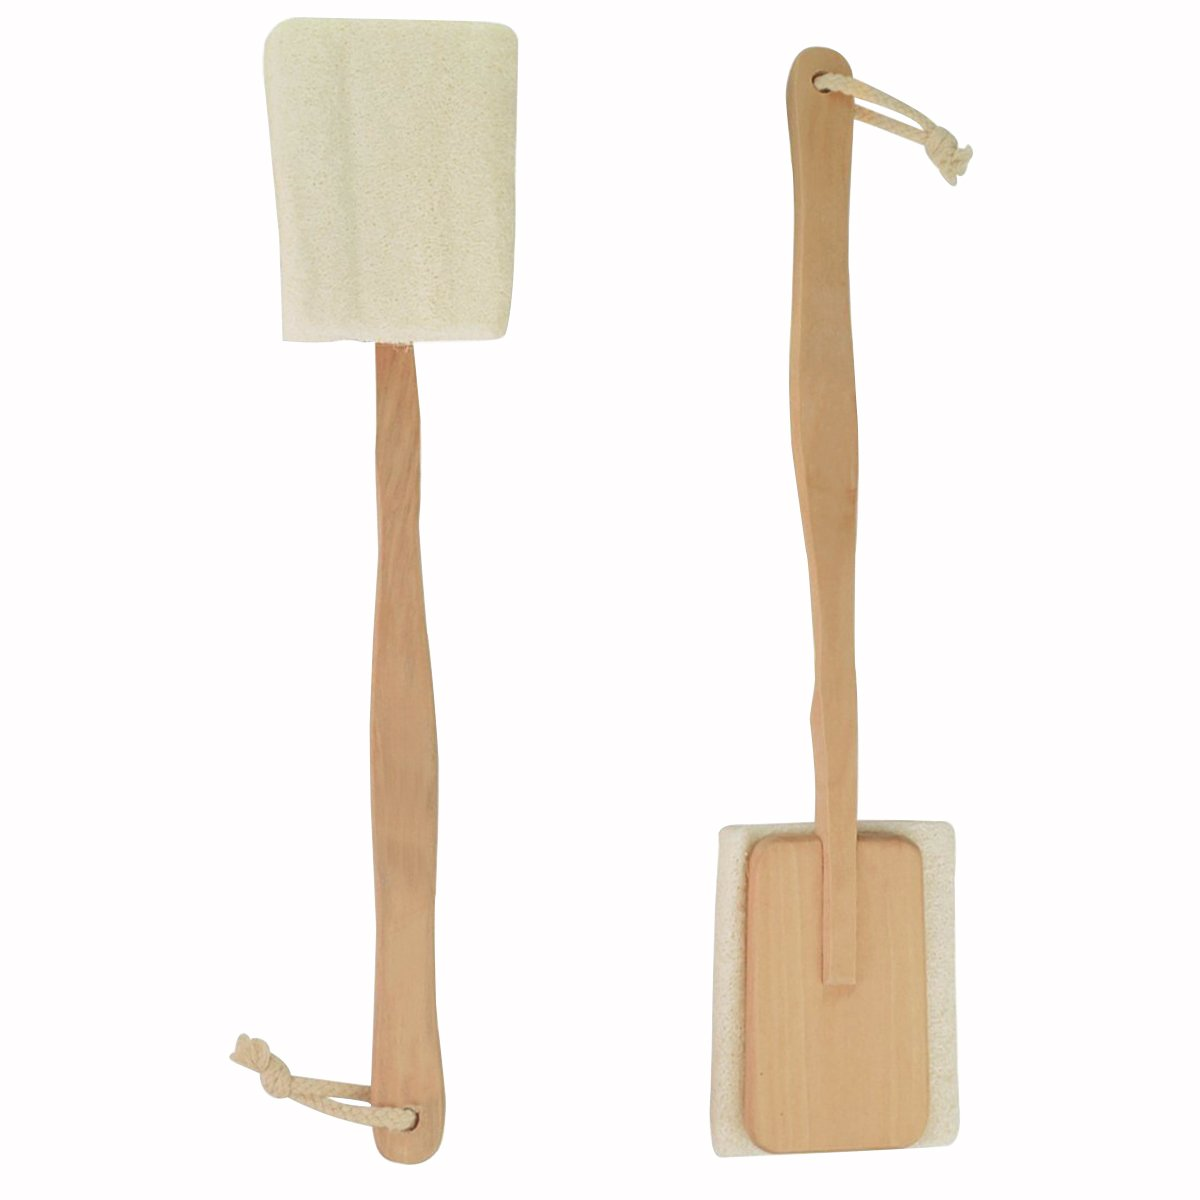 Jmkcoz 2 Pack Bath Body Brush for Back Exfoliating Loofah with Long Handle